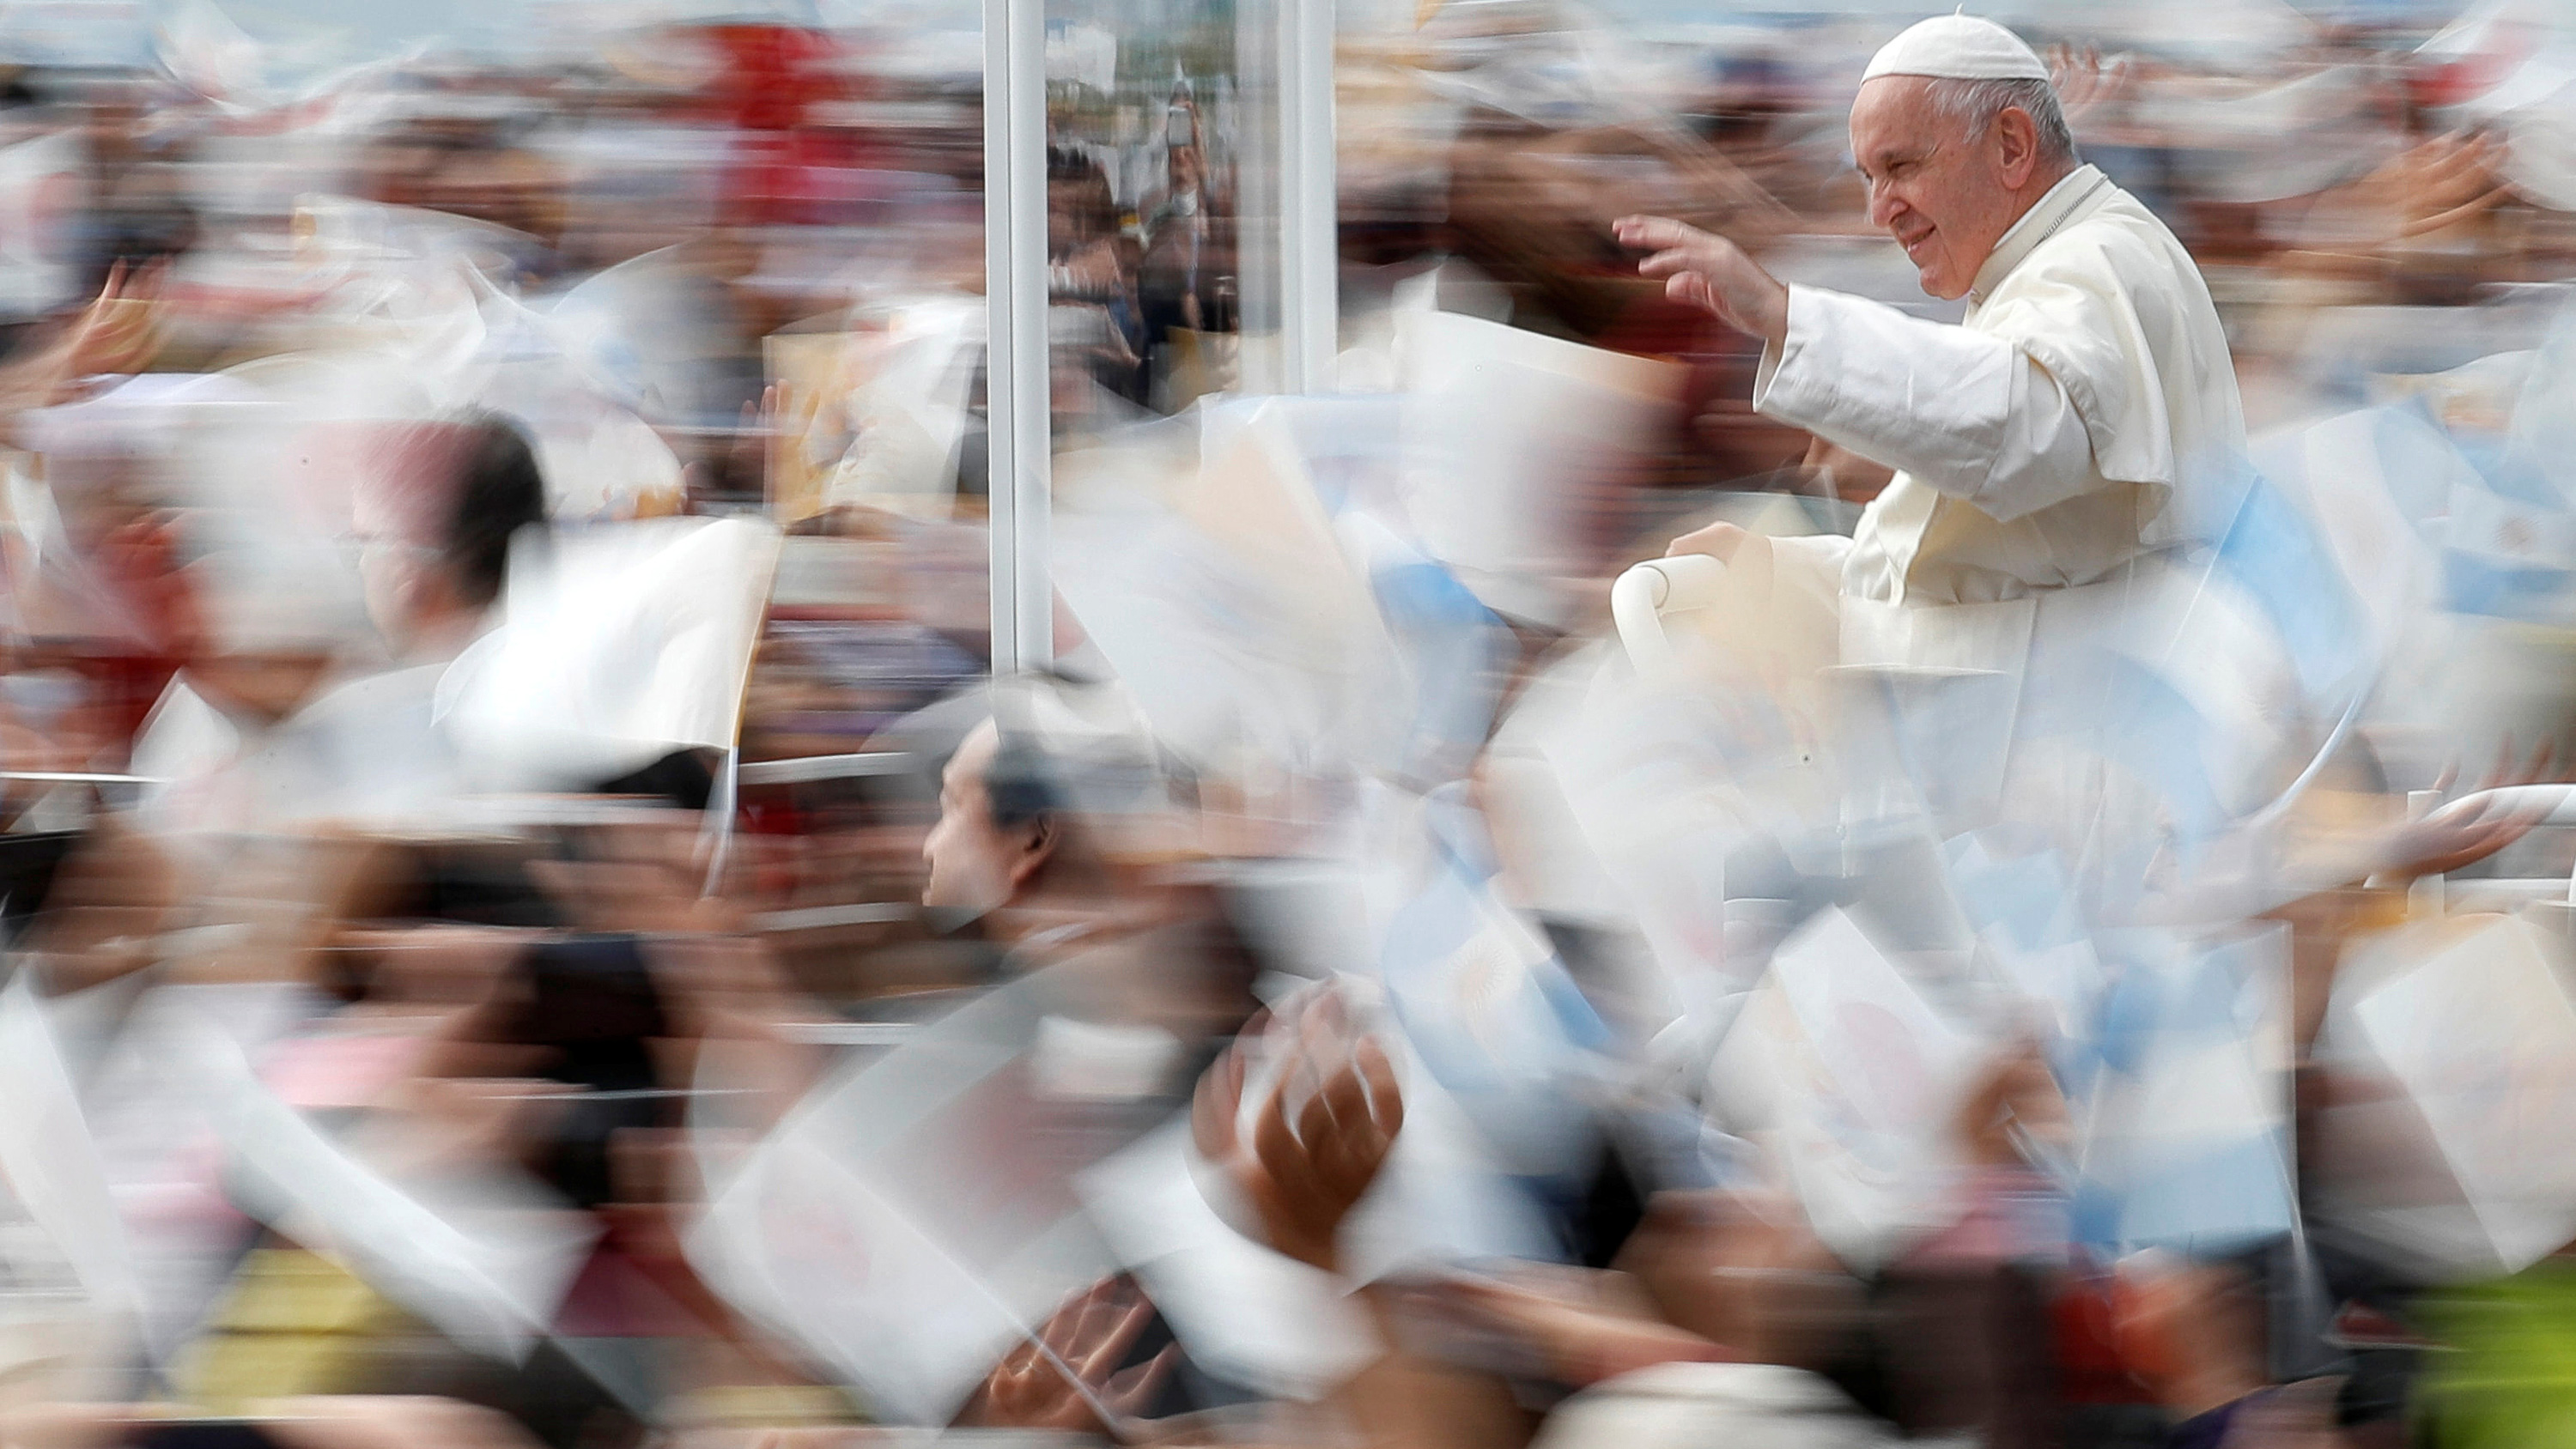 The photo shows the pope in clear focus while all the bustling crowds around him are moving and out of focus.